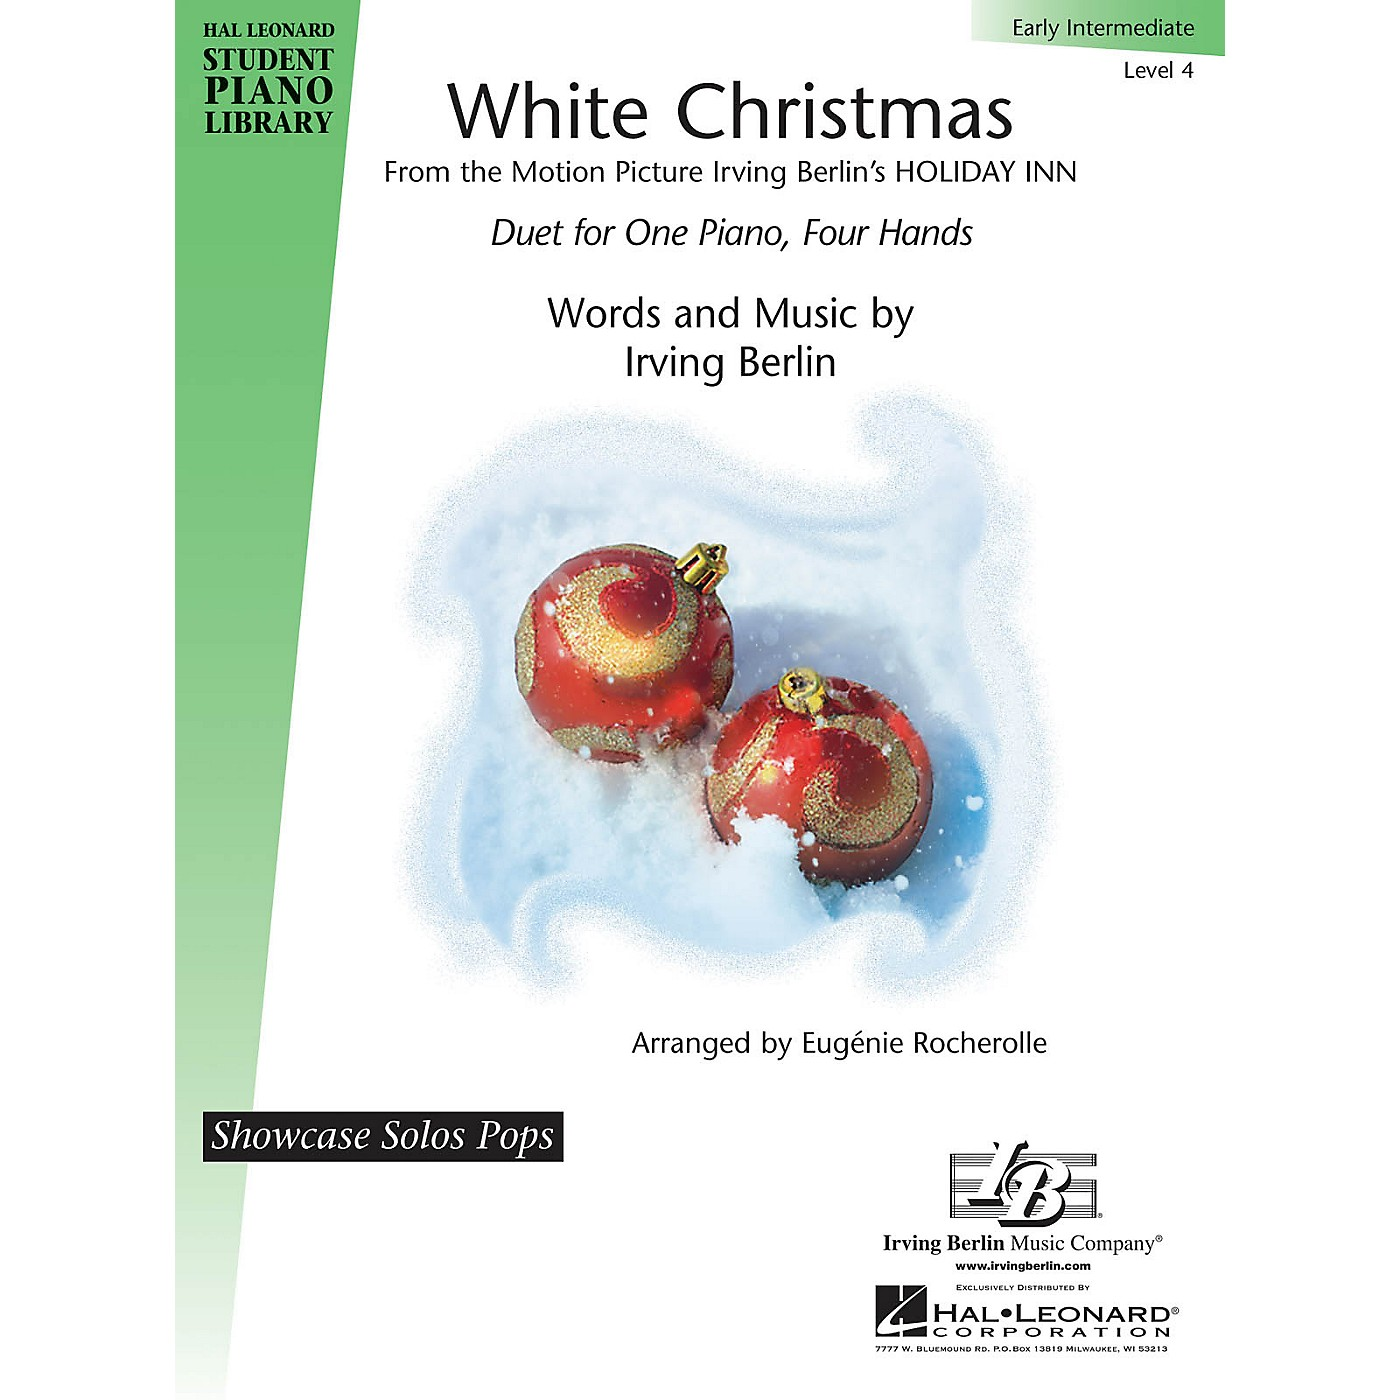 Hal Leonard White Christmas Piano Library Series Book by Irving Berlin (Level 4) thumbnail